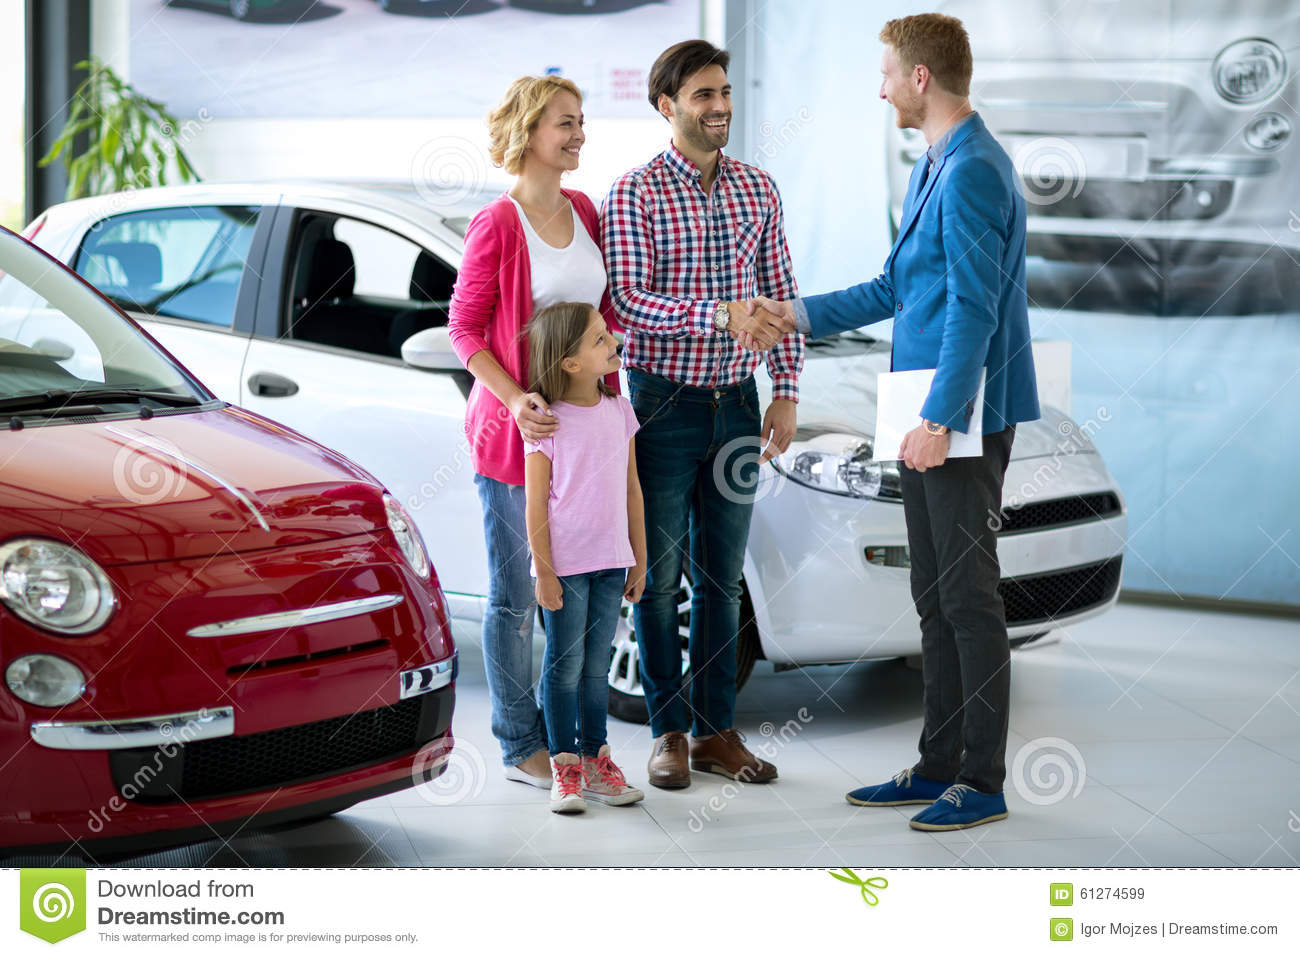 How Long To Buy Car Insurance